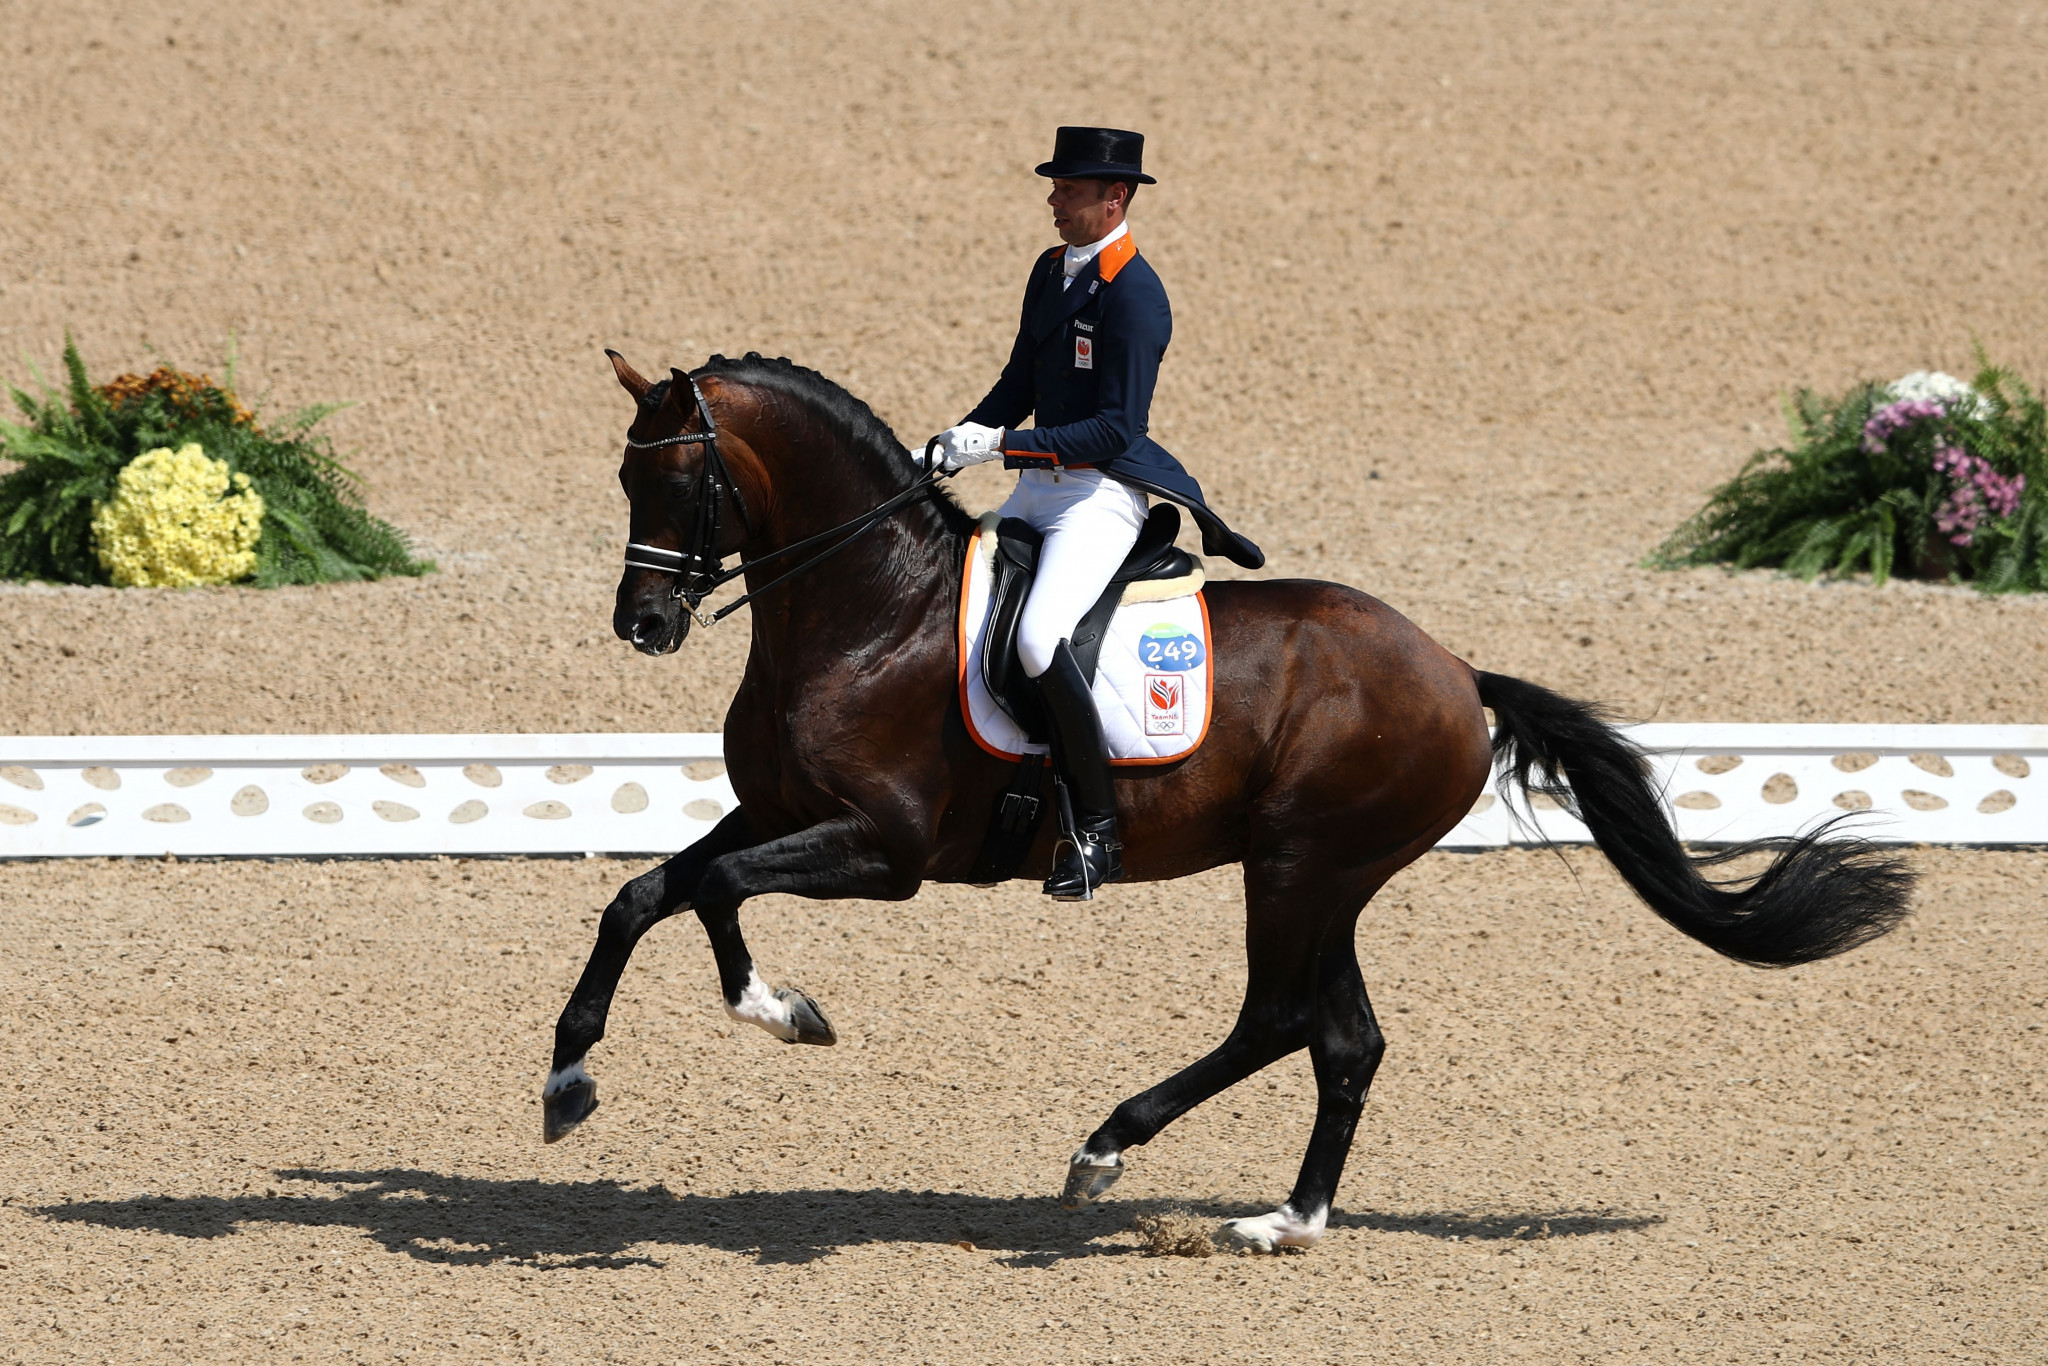 Hans Peter Minderhoud is set to be part of The Netherlands' reshuffled dressage team at the Tokyo 2020 Olympics ©Getty Images